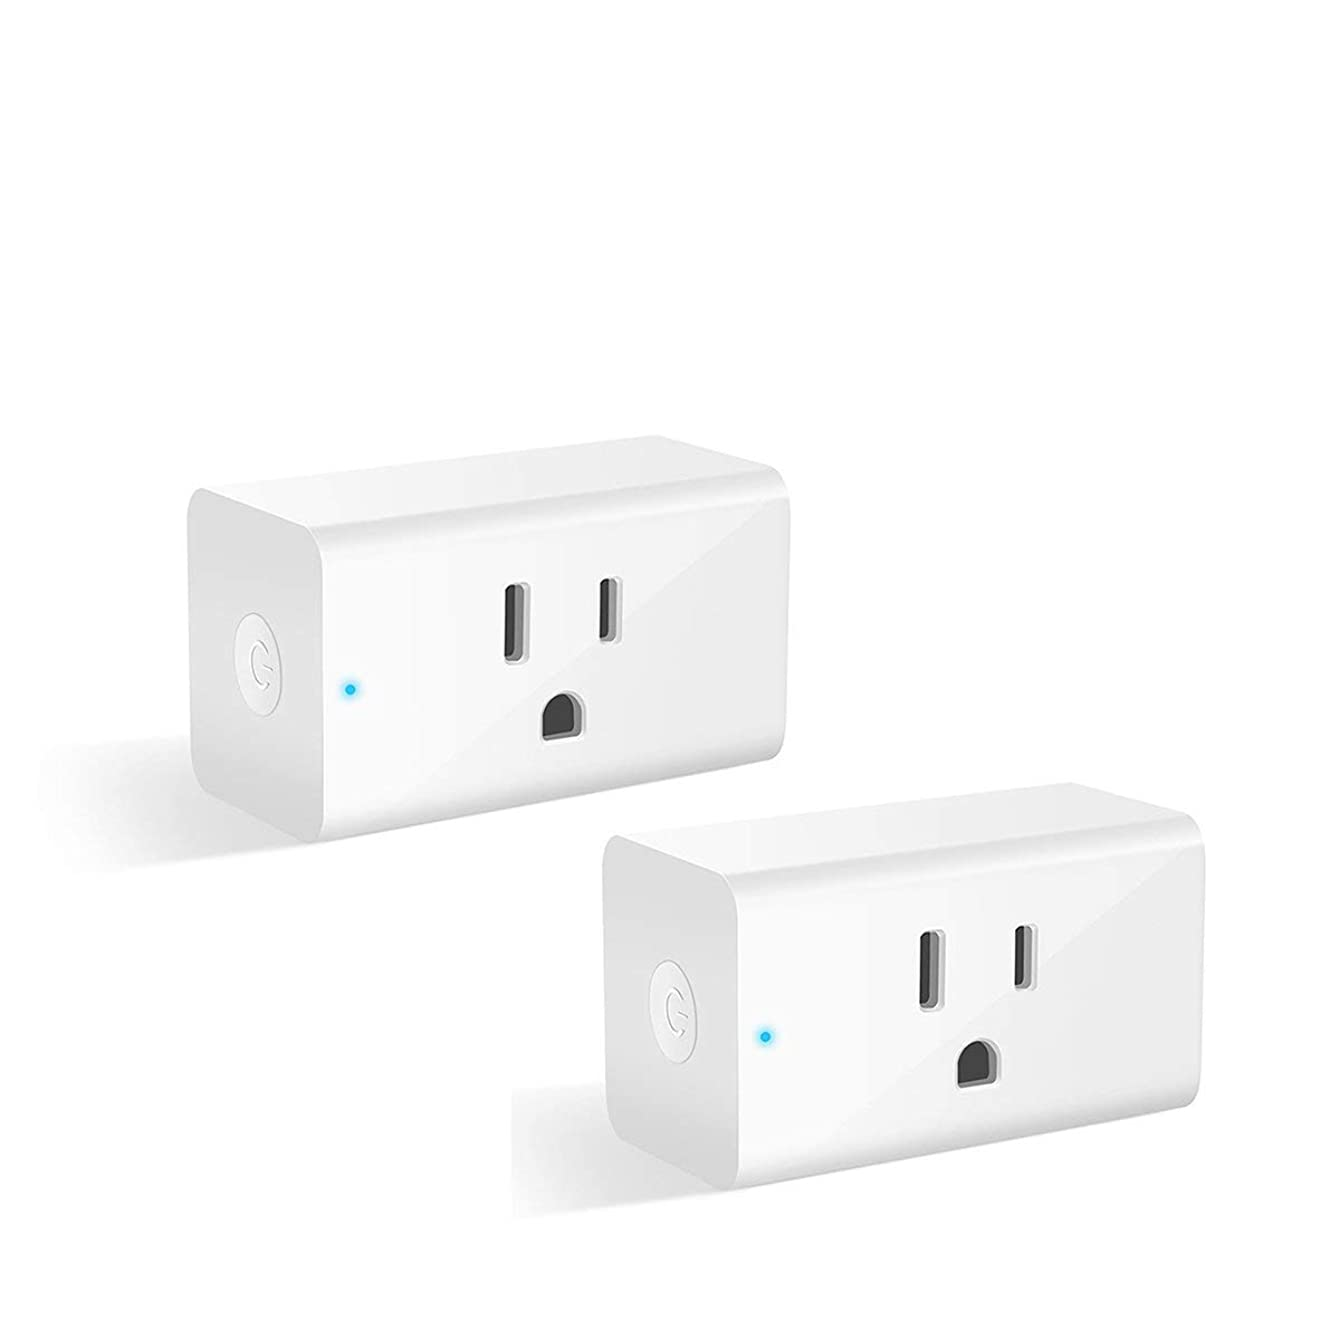 Smart Plug, Alexa Wifi Outlet Smart Plugs for Smart Home App Remote Control Outlets (AC 110-125V/16A/1800W), No Hub Required Electrical Socket Compatible with Alexa and Google Home Wifi Timer- 2 Pack